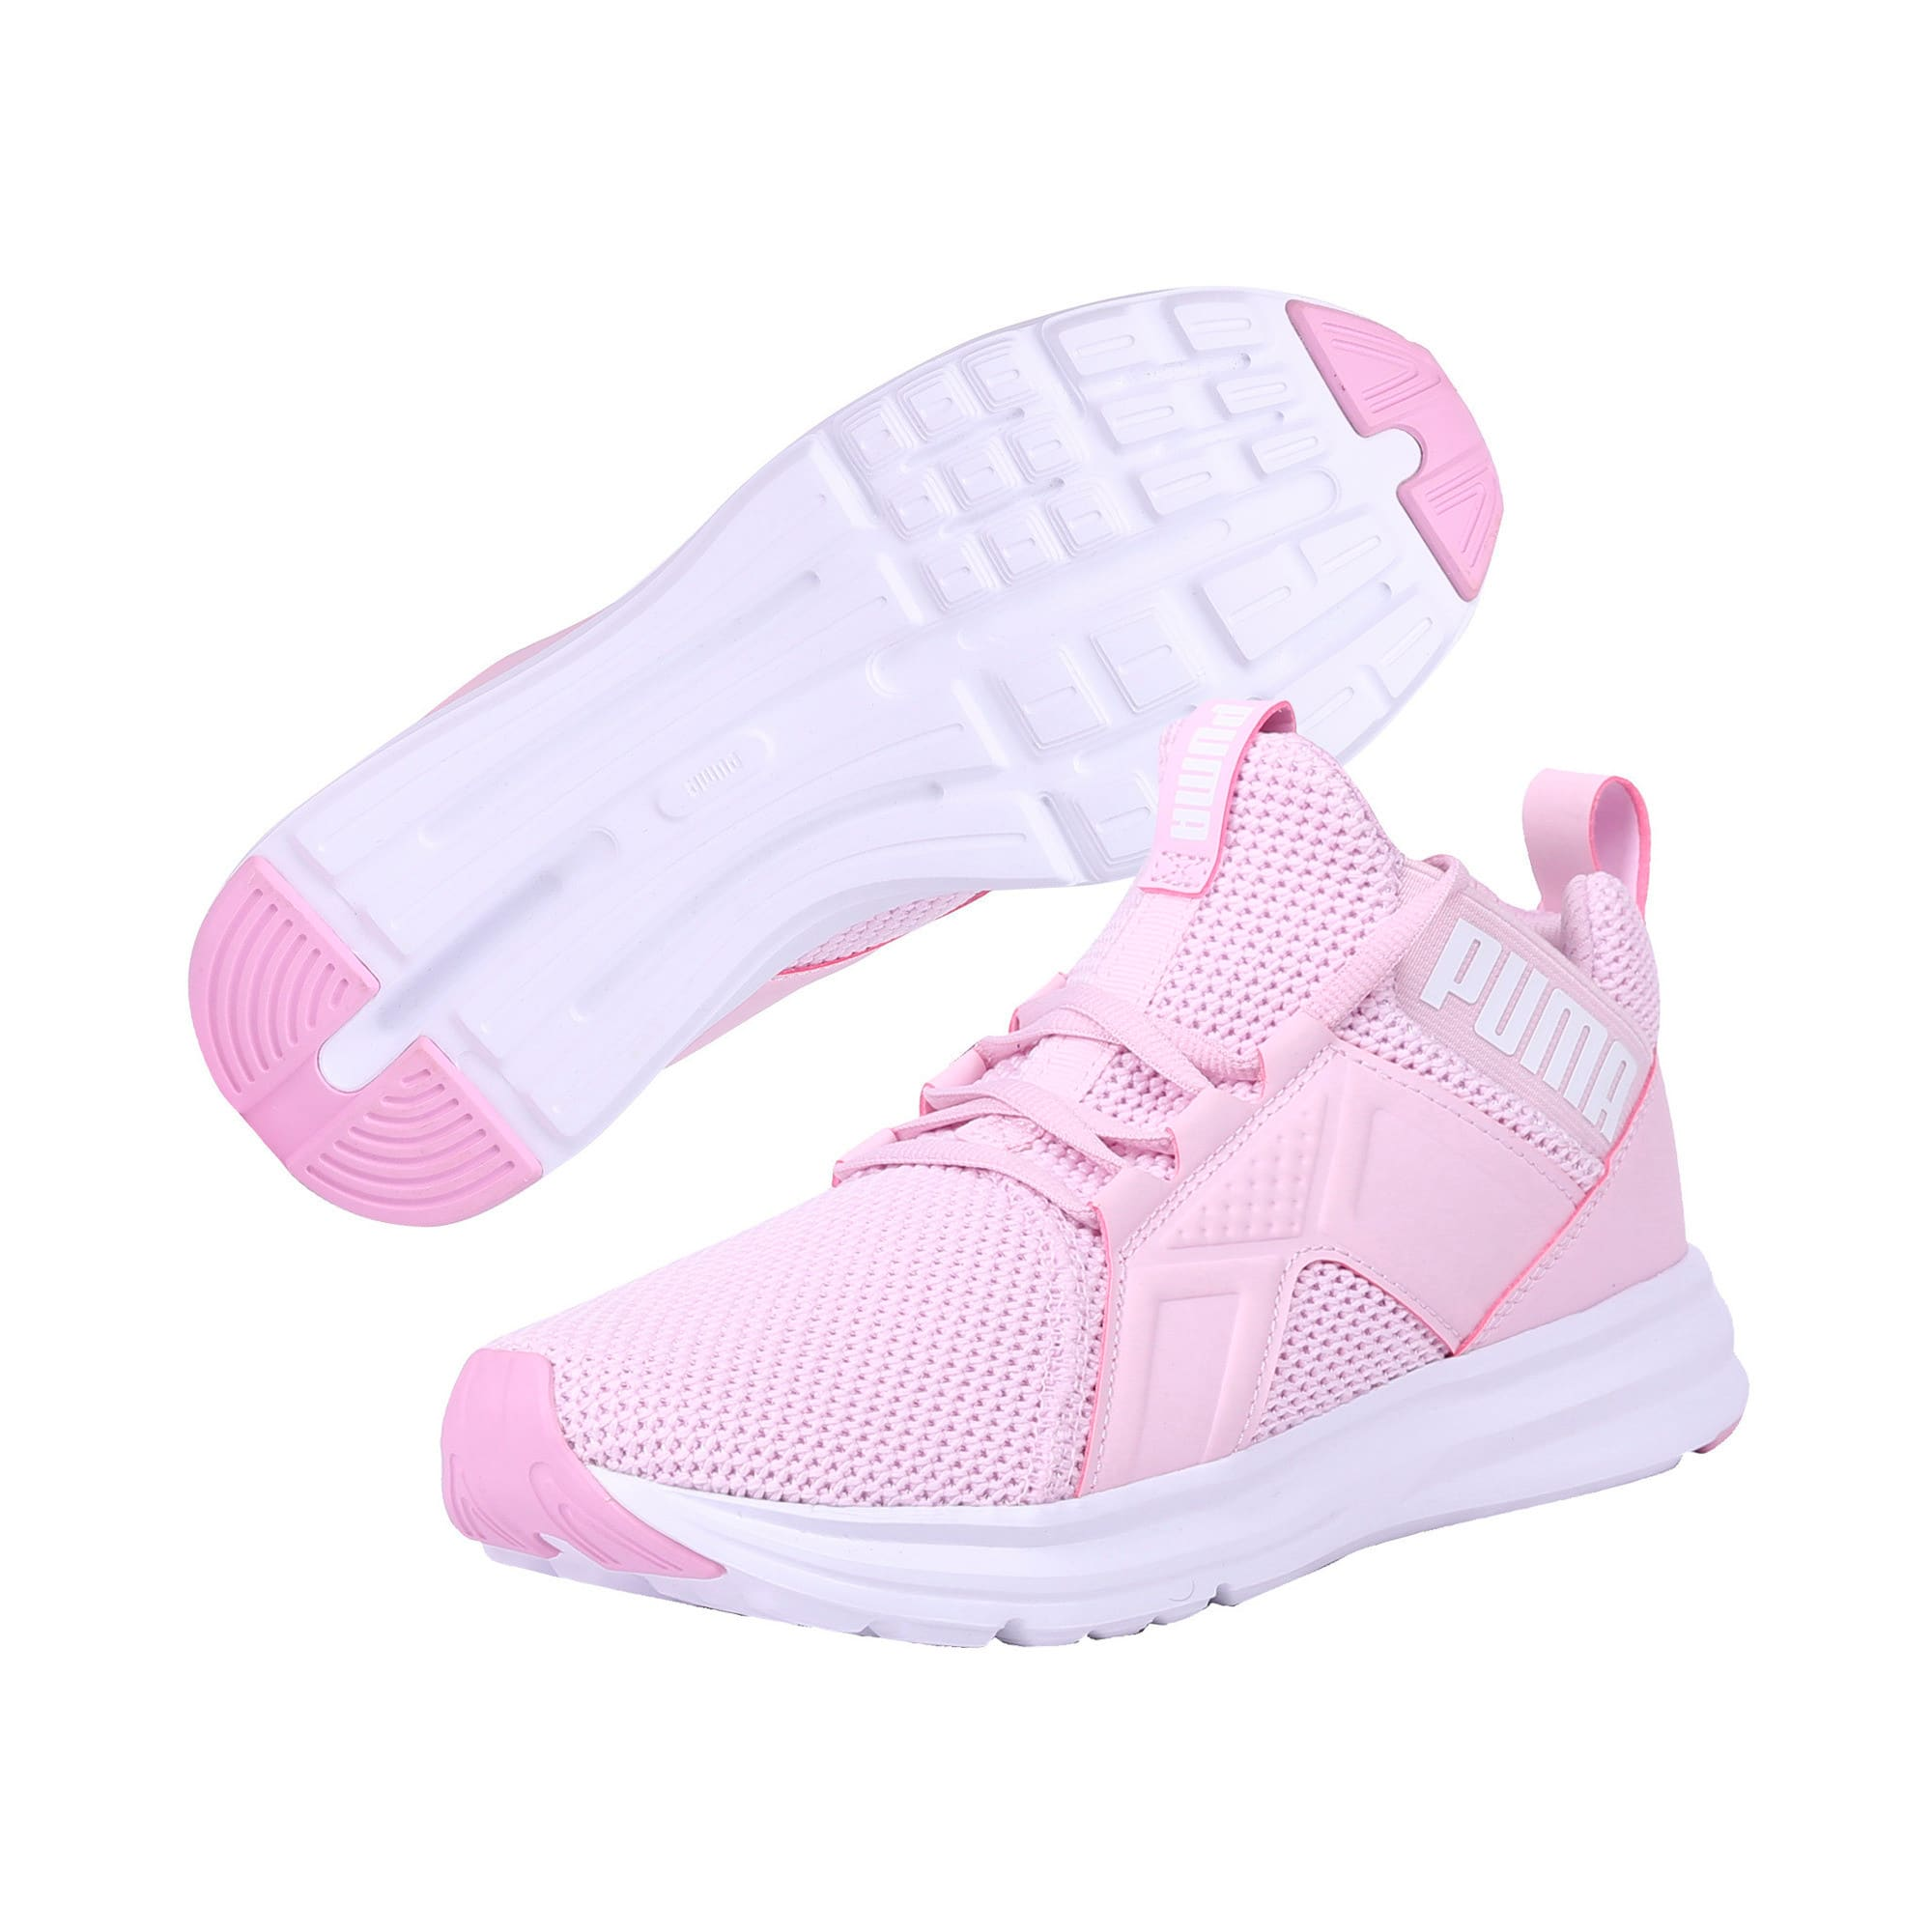 Thumbnail 2 of Enzo Weave Women's Trainers, Winsome Orchid-Puma White, medium-IND